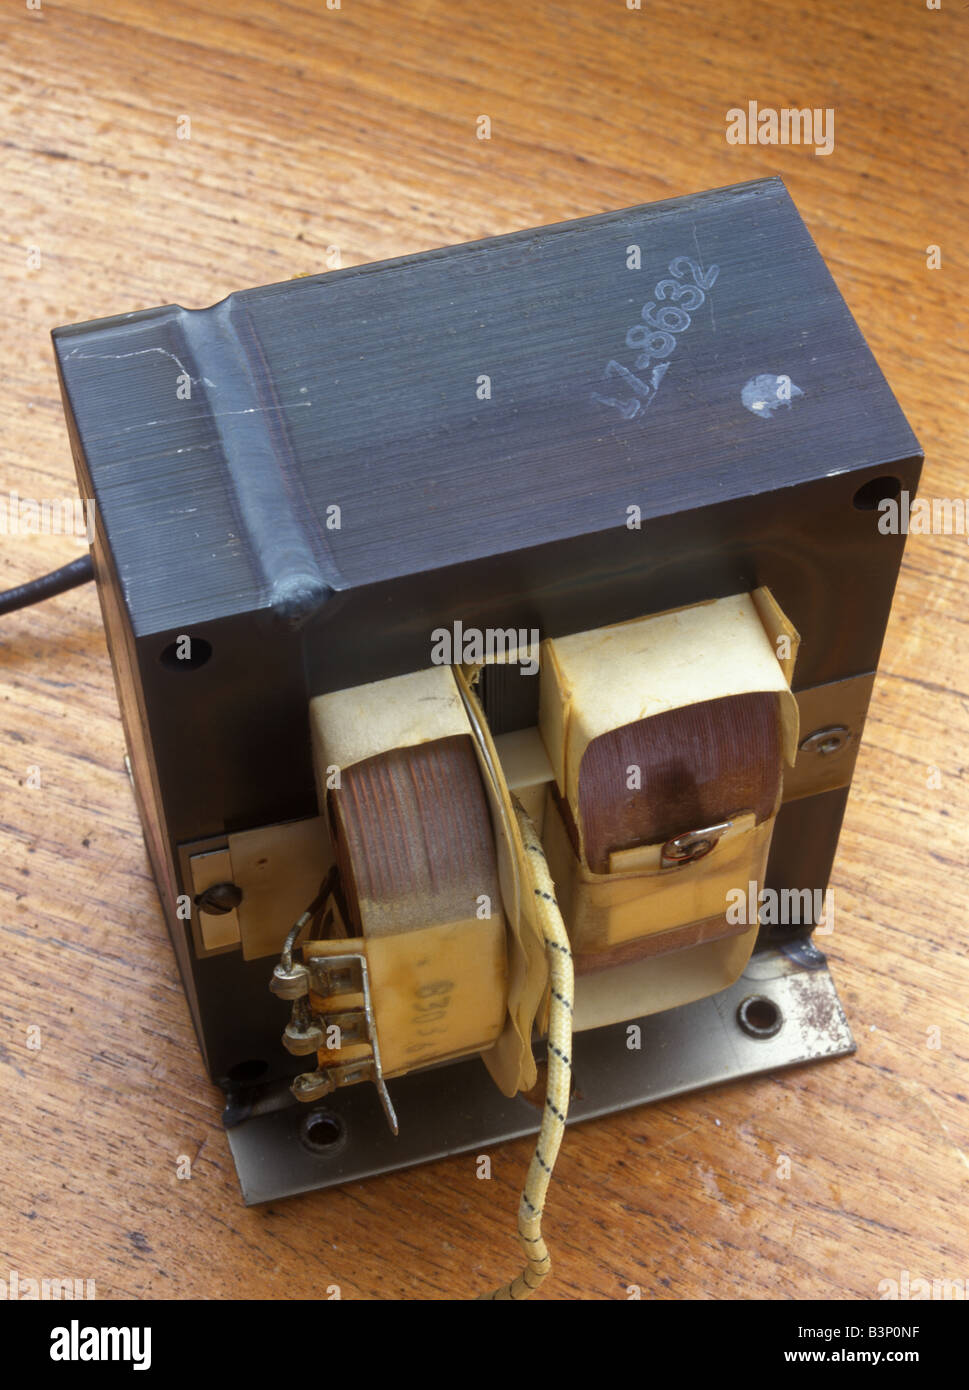 laminated transformer to reduce eddy currents - Stock Image